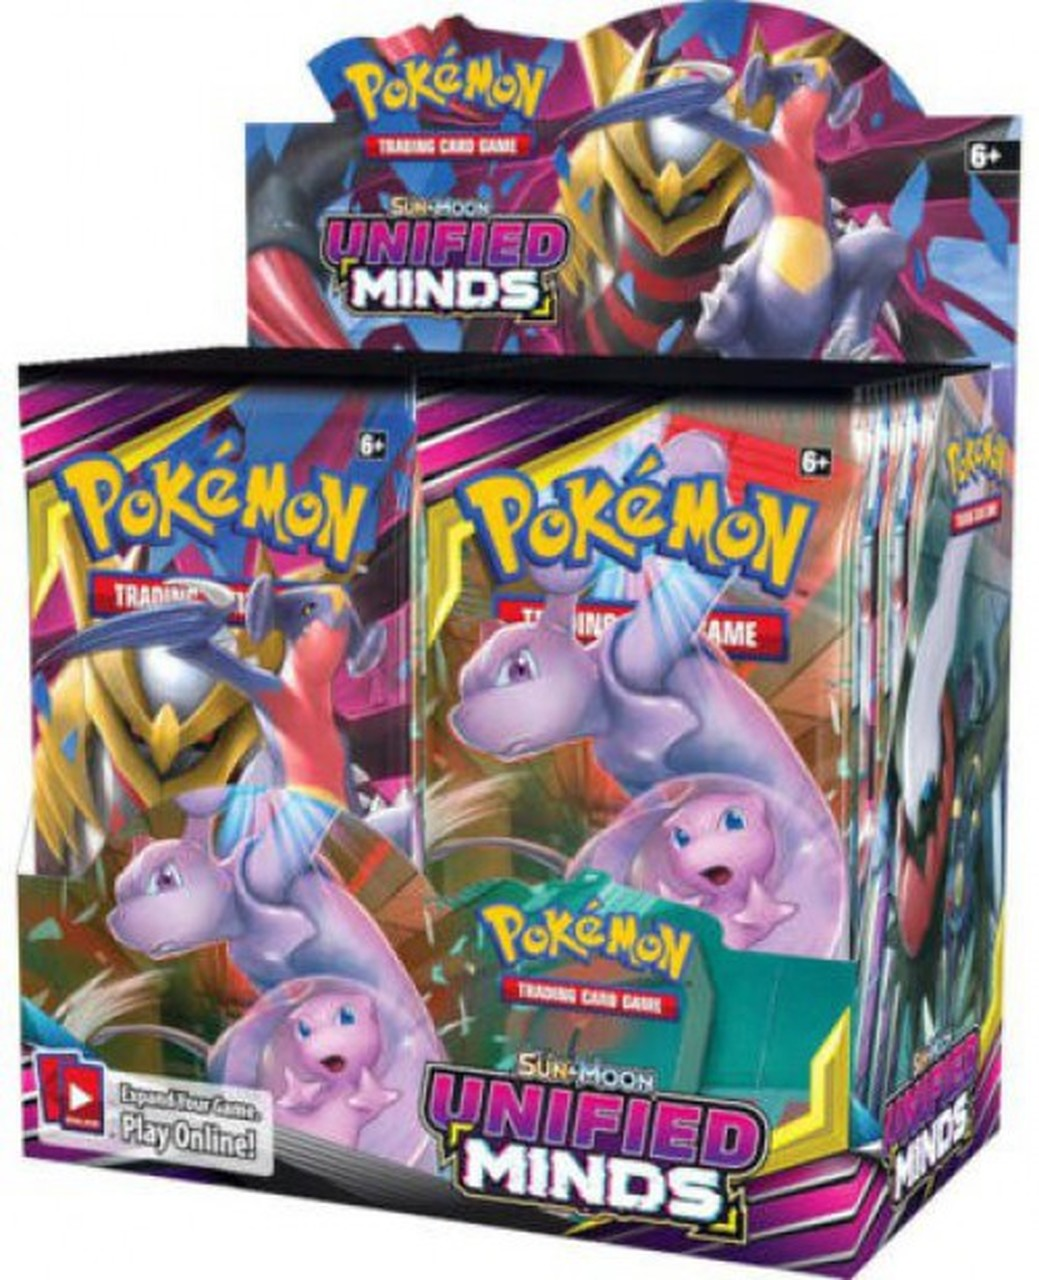 Pokémon TCG: Sun & Moon Unified Minds Display Box (36 Booster Packs) | Evolution TCG